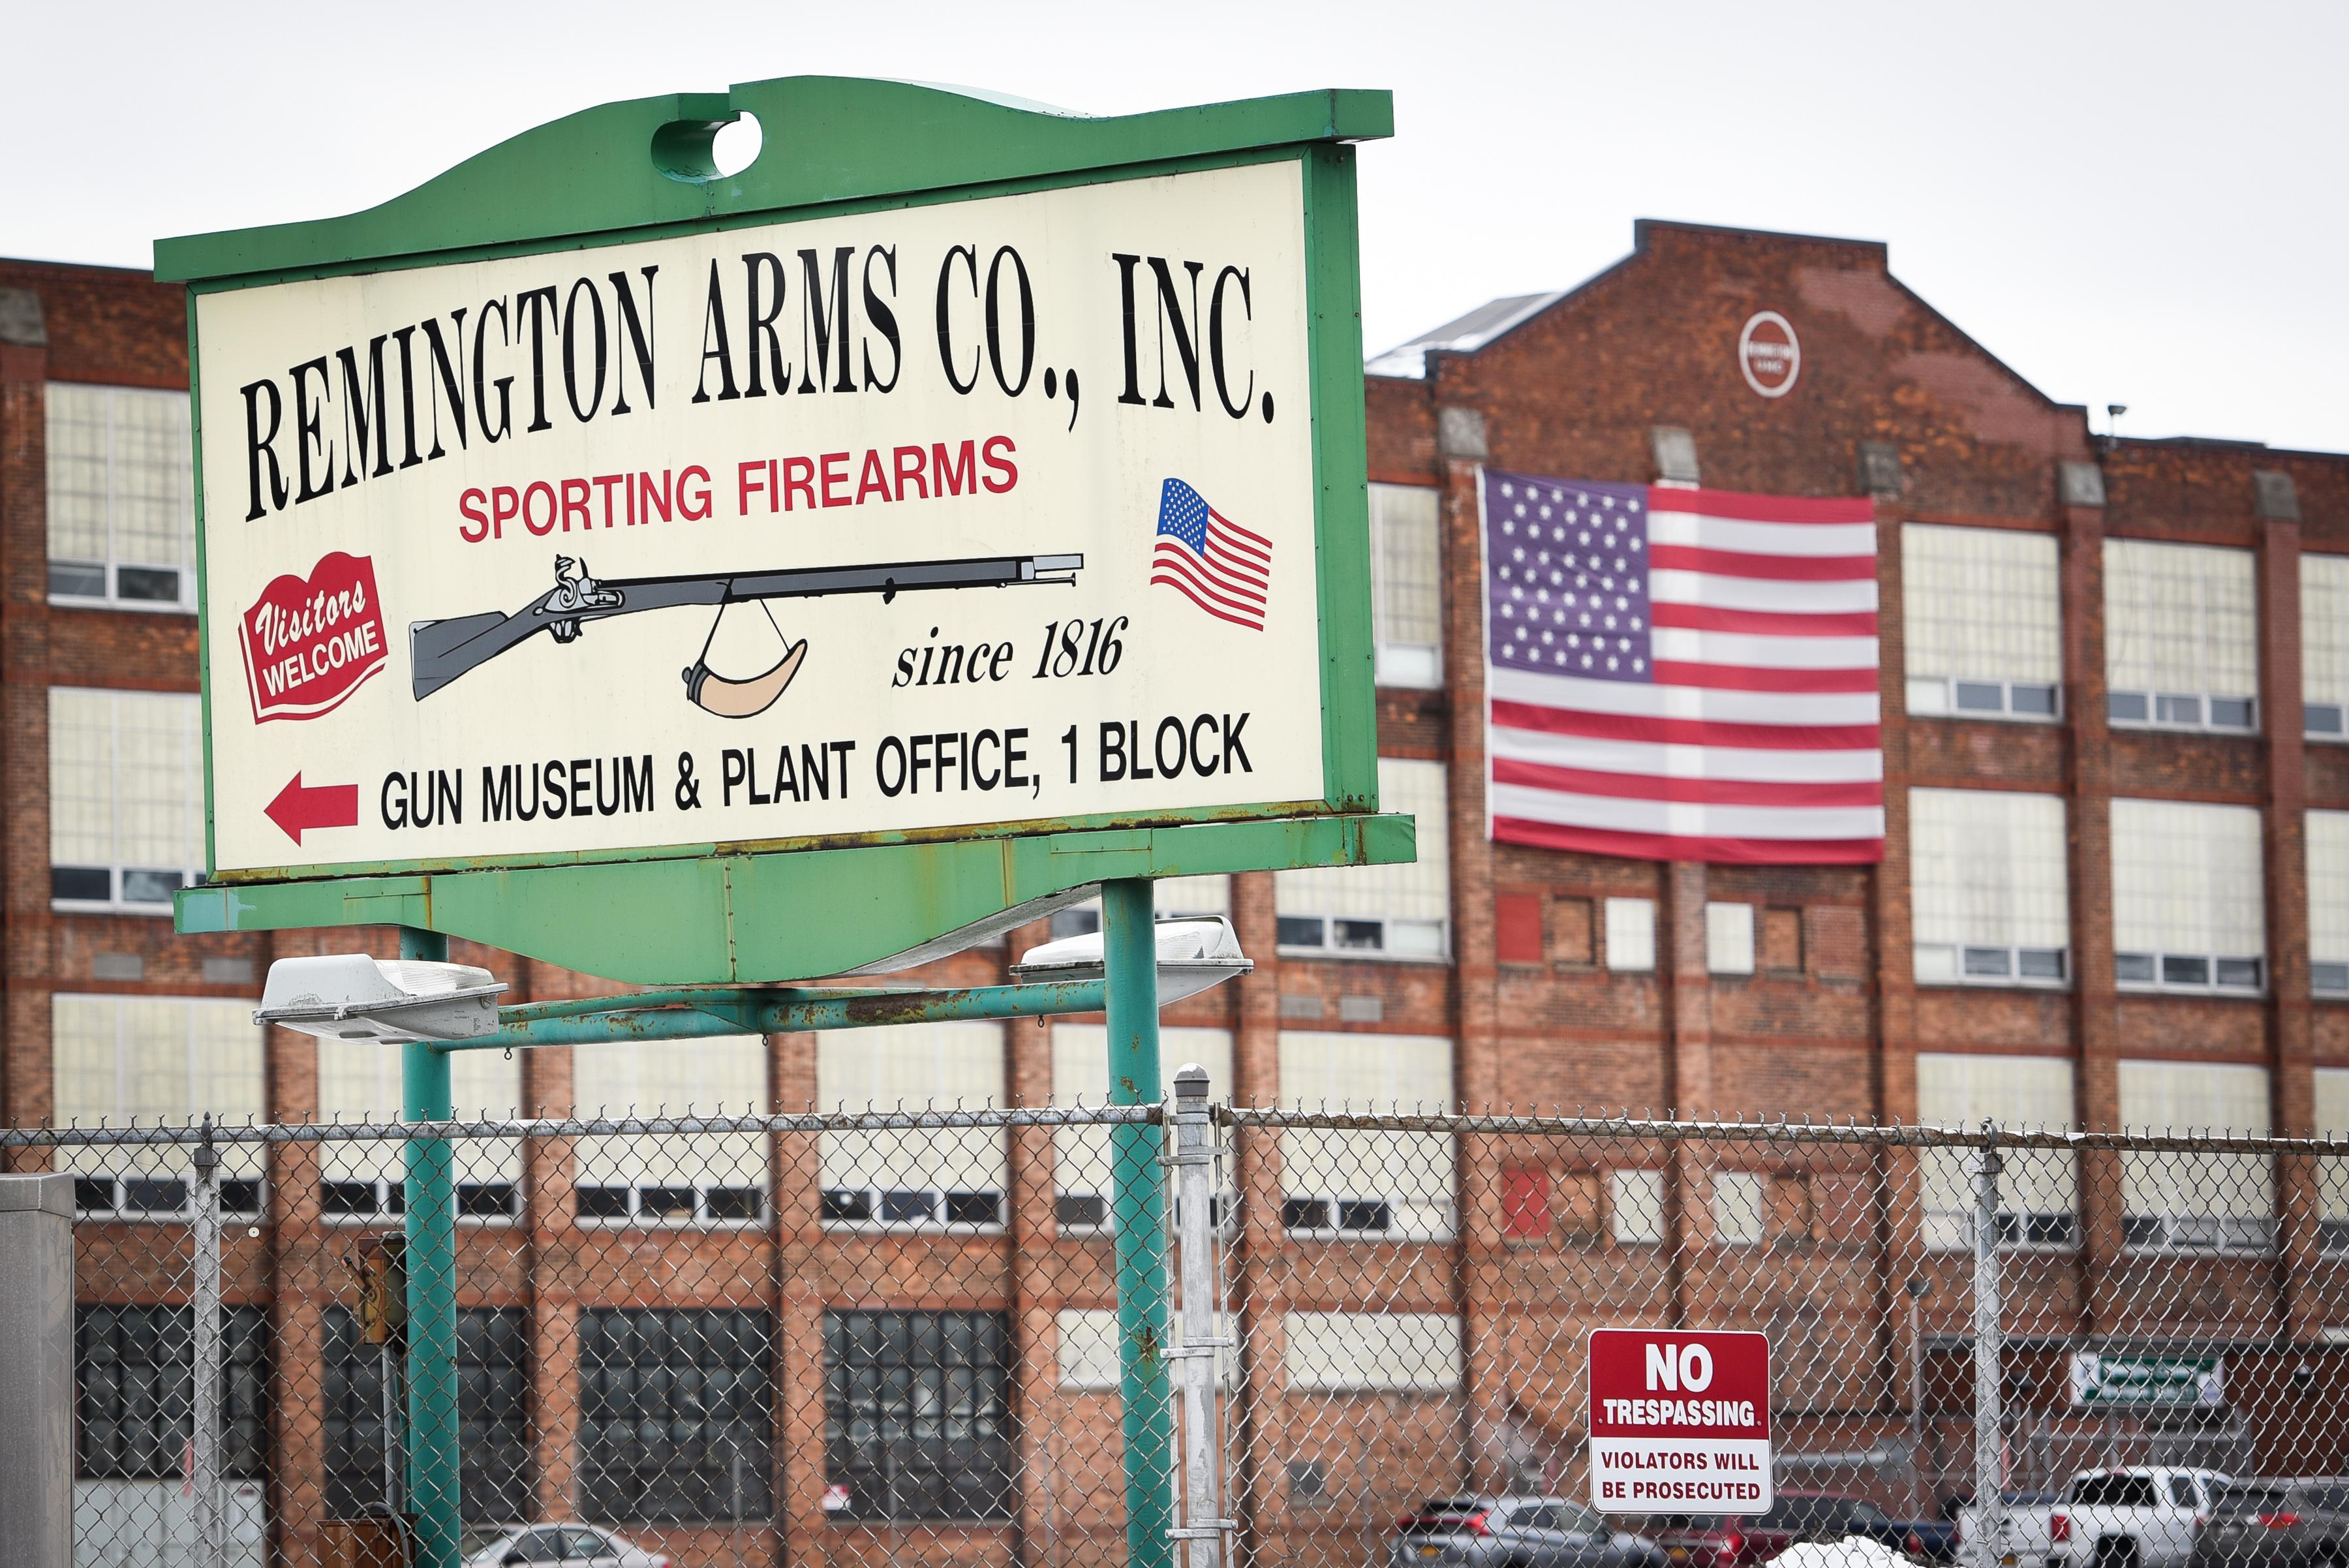 Remington Arms, oldest U.S. gunmaker, to lay off 585 employees in New York, union says